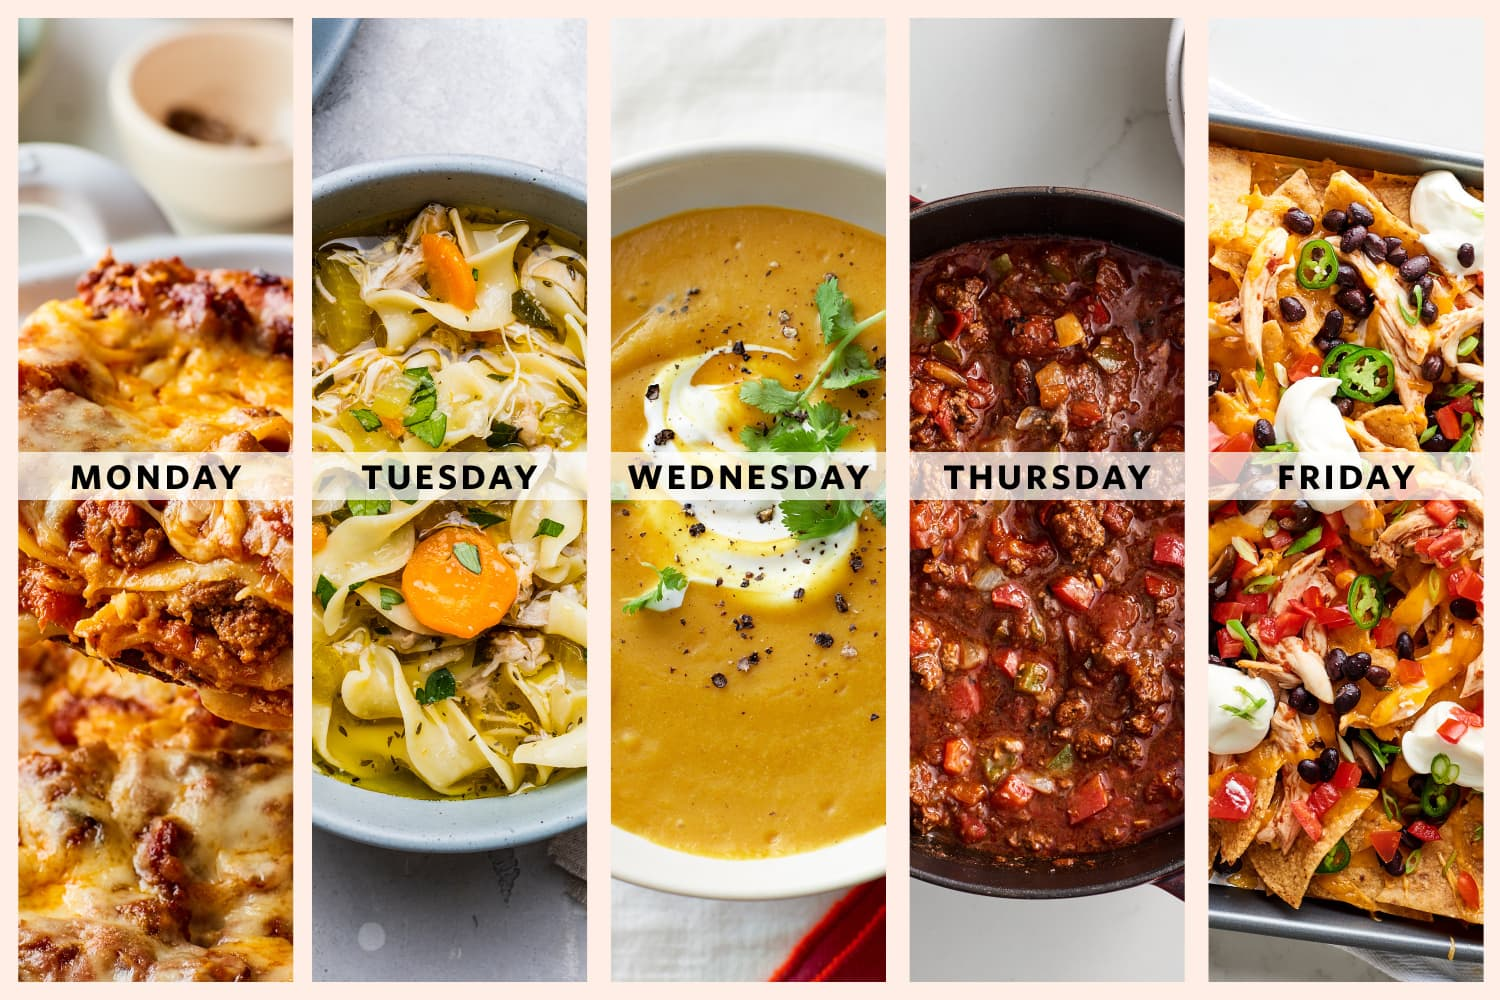 6 Weeks of Cozy Winter Meal Plans